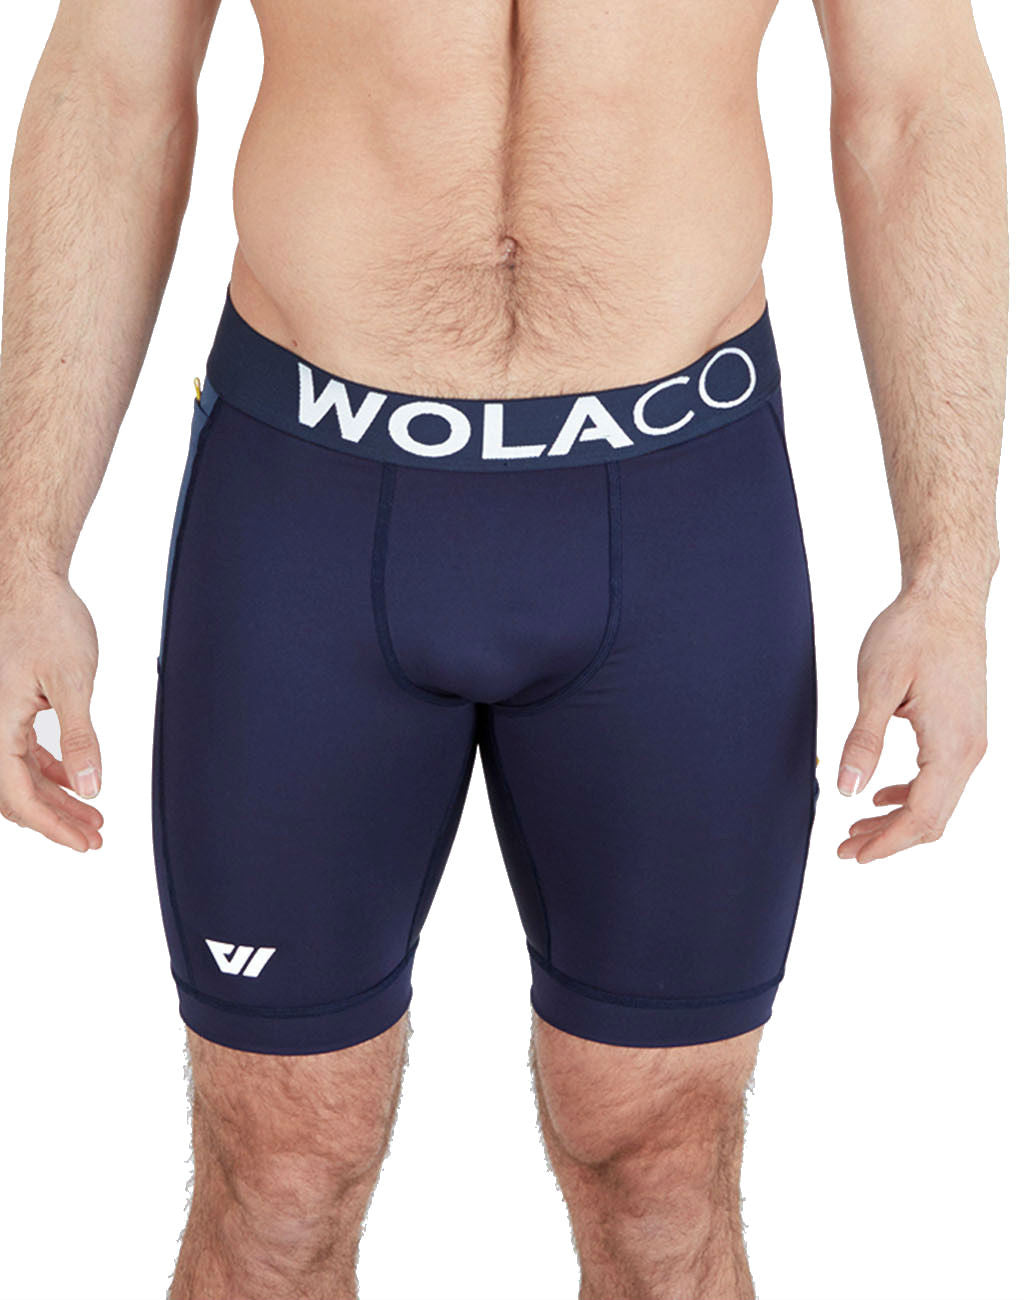 Wolaco North Moore Compression Shorts 9inNavy_master_image